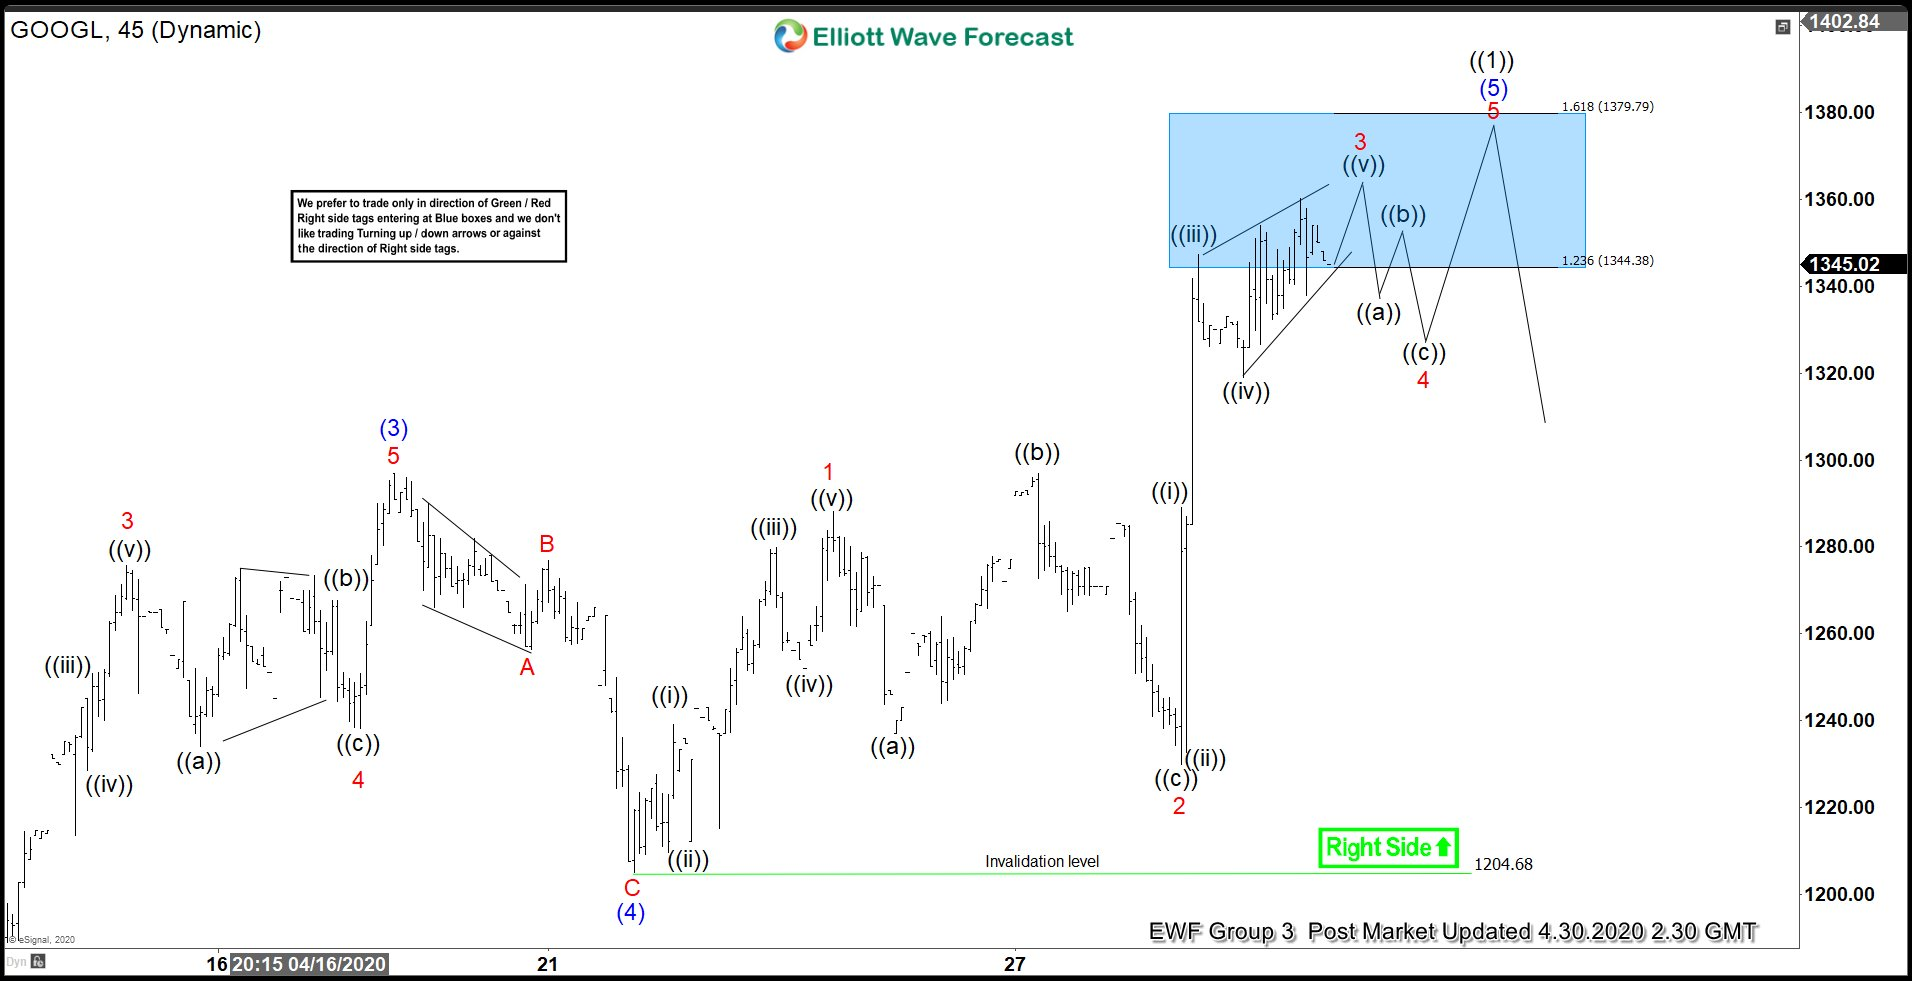 Elliott Wave View: Google (GOOGL) Ending 5 waves Impulse